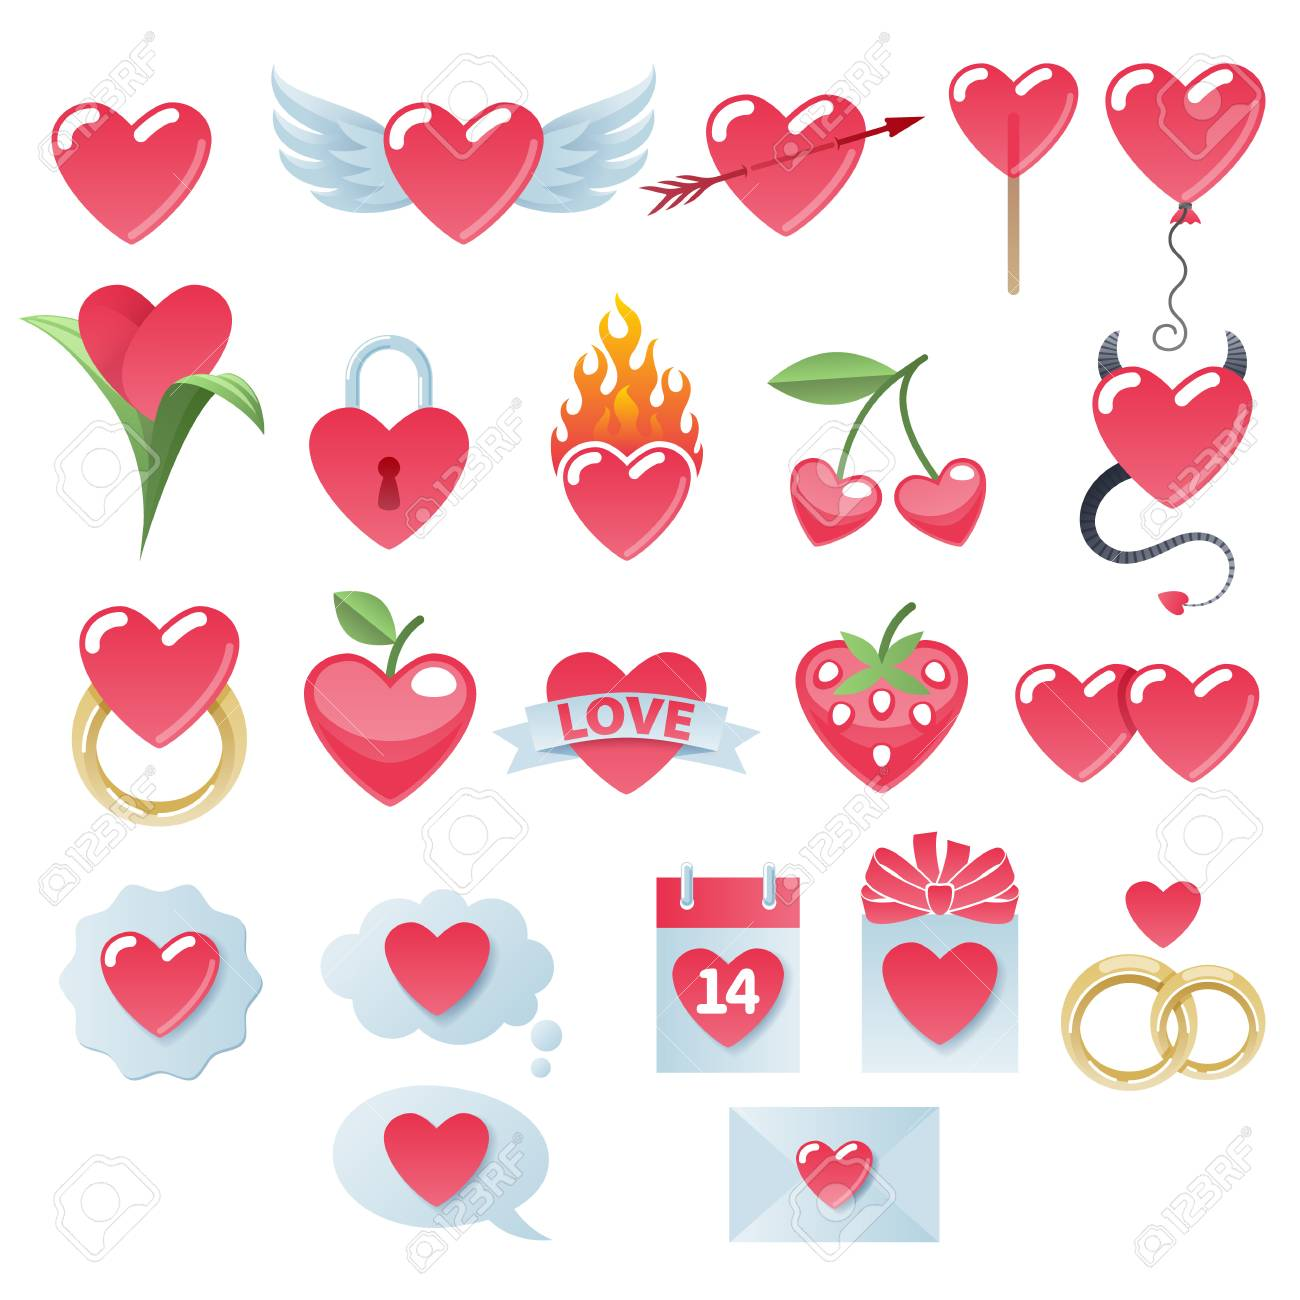 Valentine S Day Hearts Icons Set Love Symbols Royalty Free